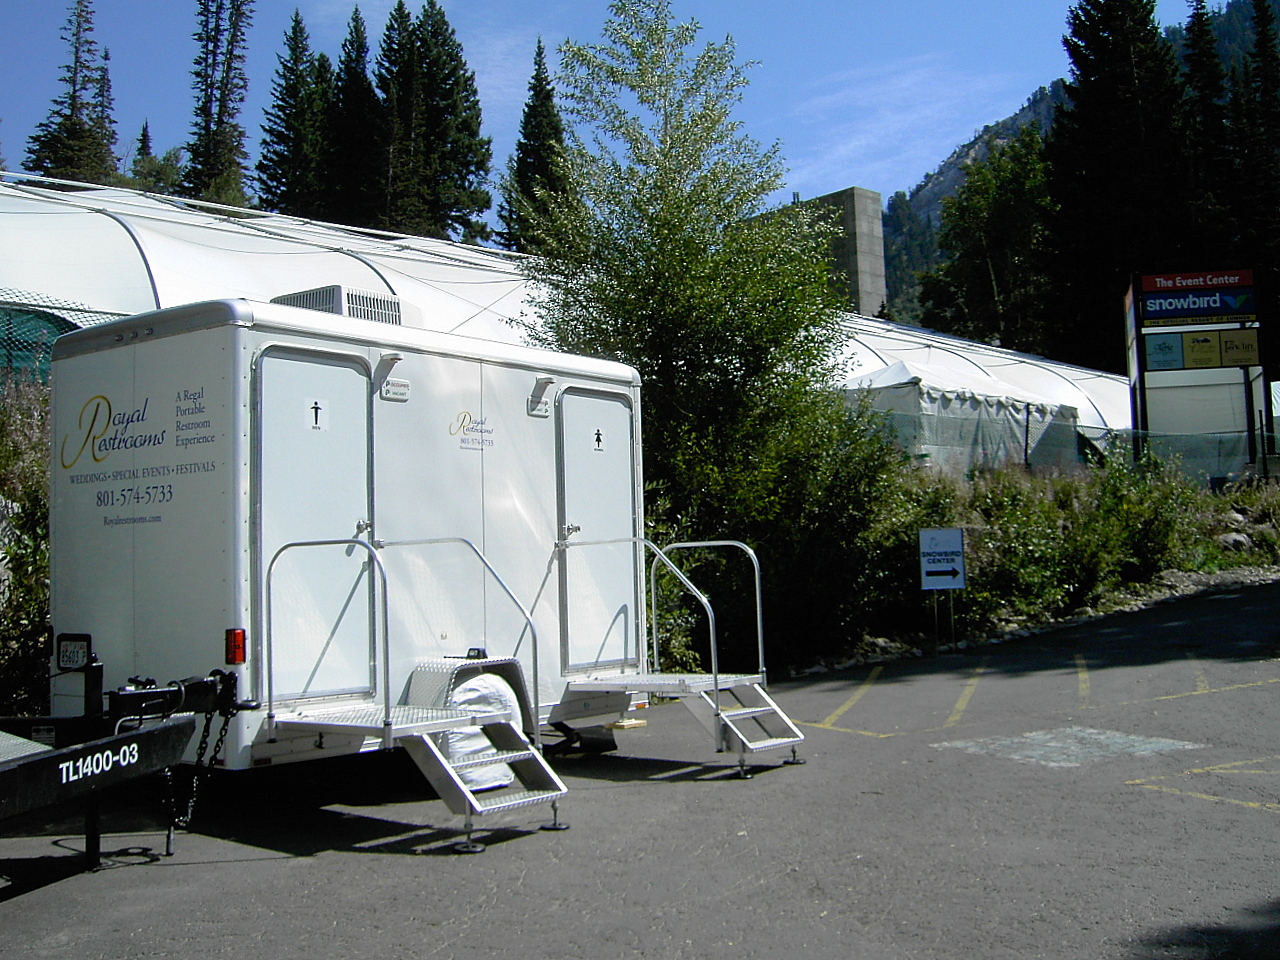 utah-portable-restrooms-at-snowbird-resort-ii